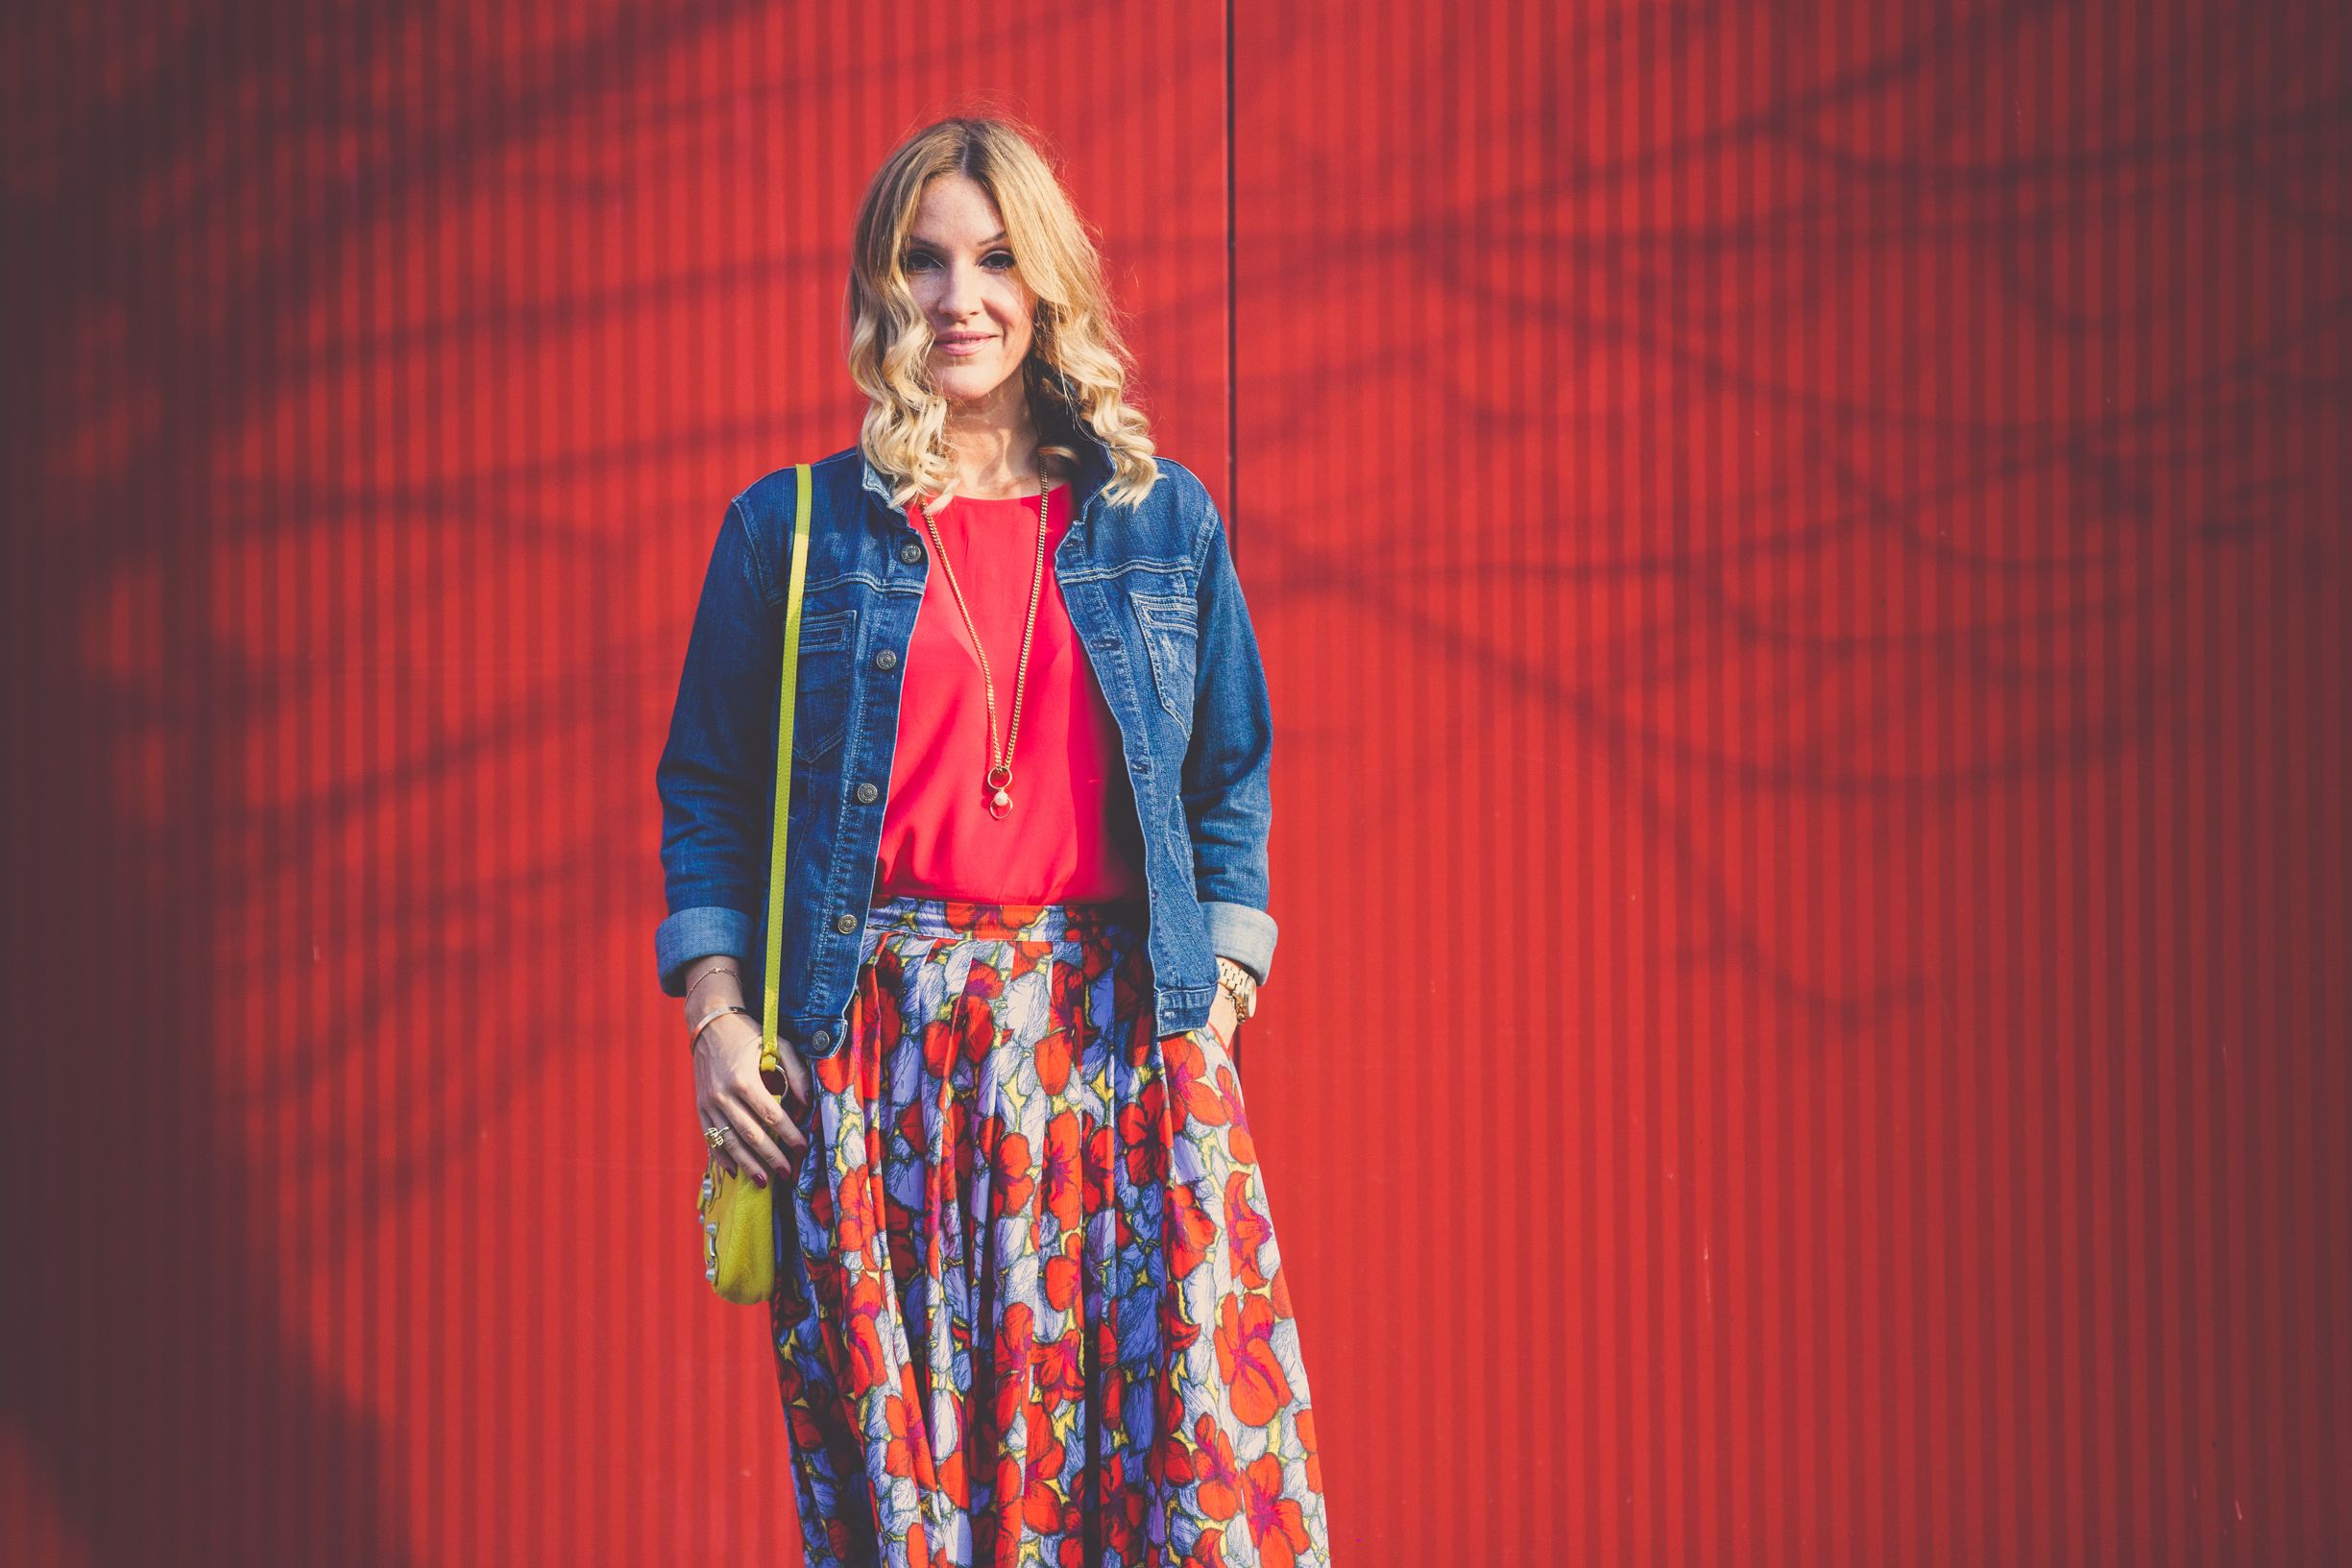 midi skirt on Mademoiselle Jules www.mllejules.com photogarphy by Patricia Brochu lady in red